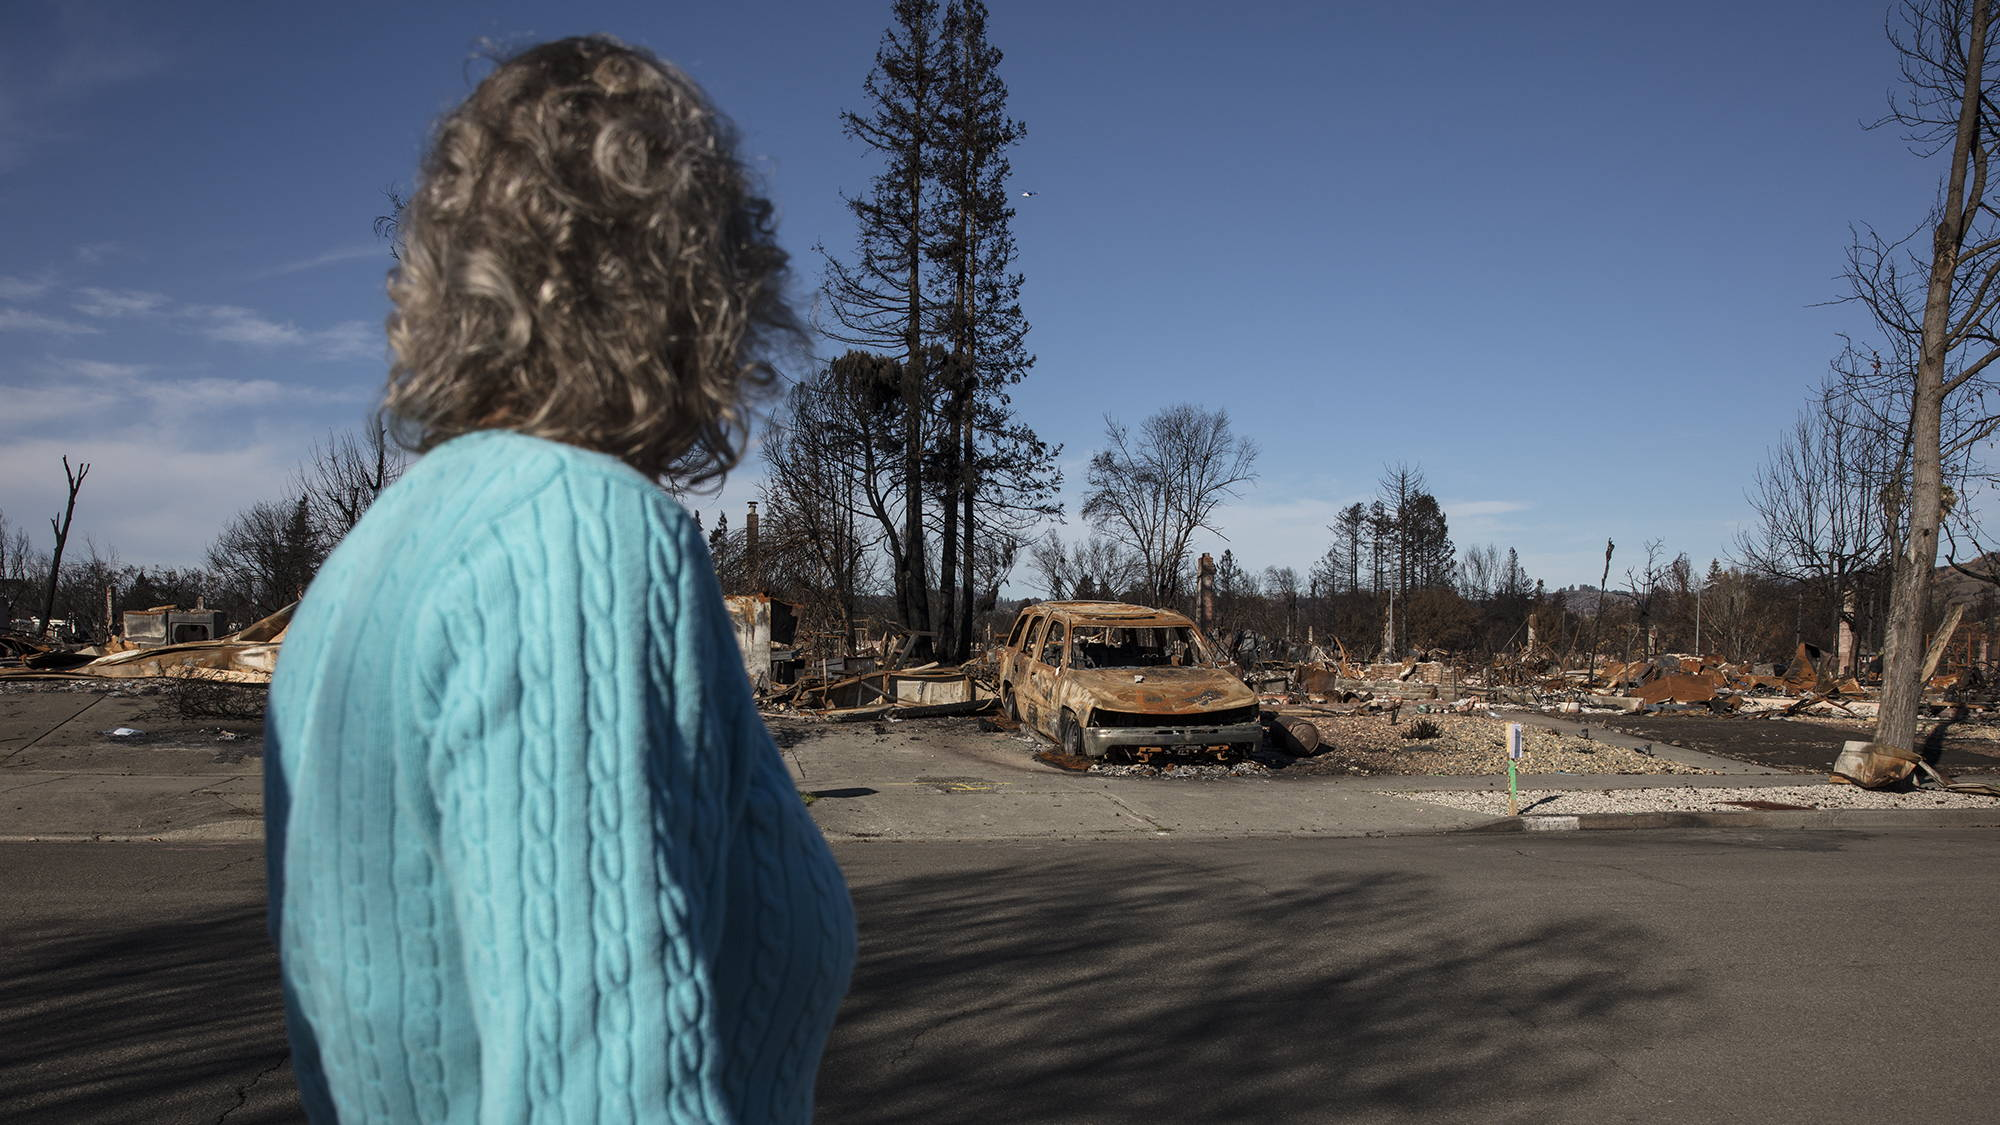 Wildfire Aftermath at Coffey Park